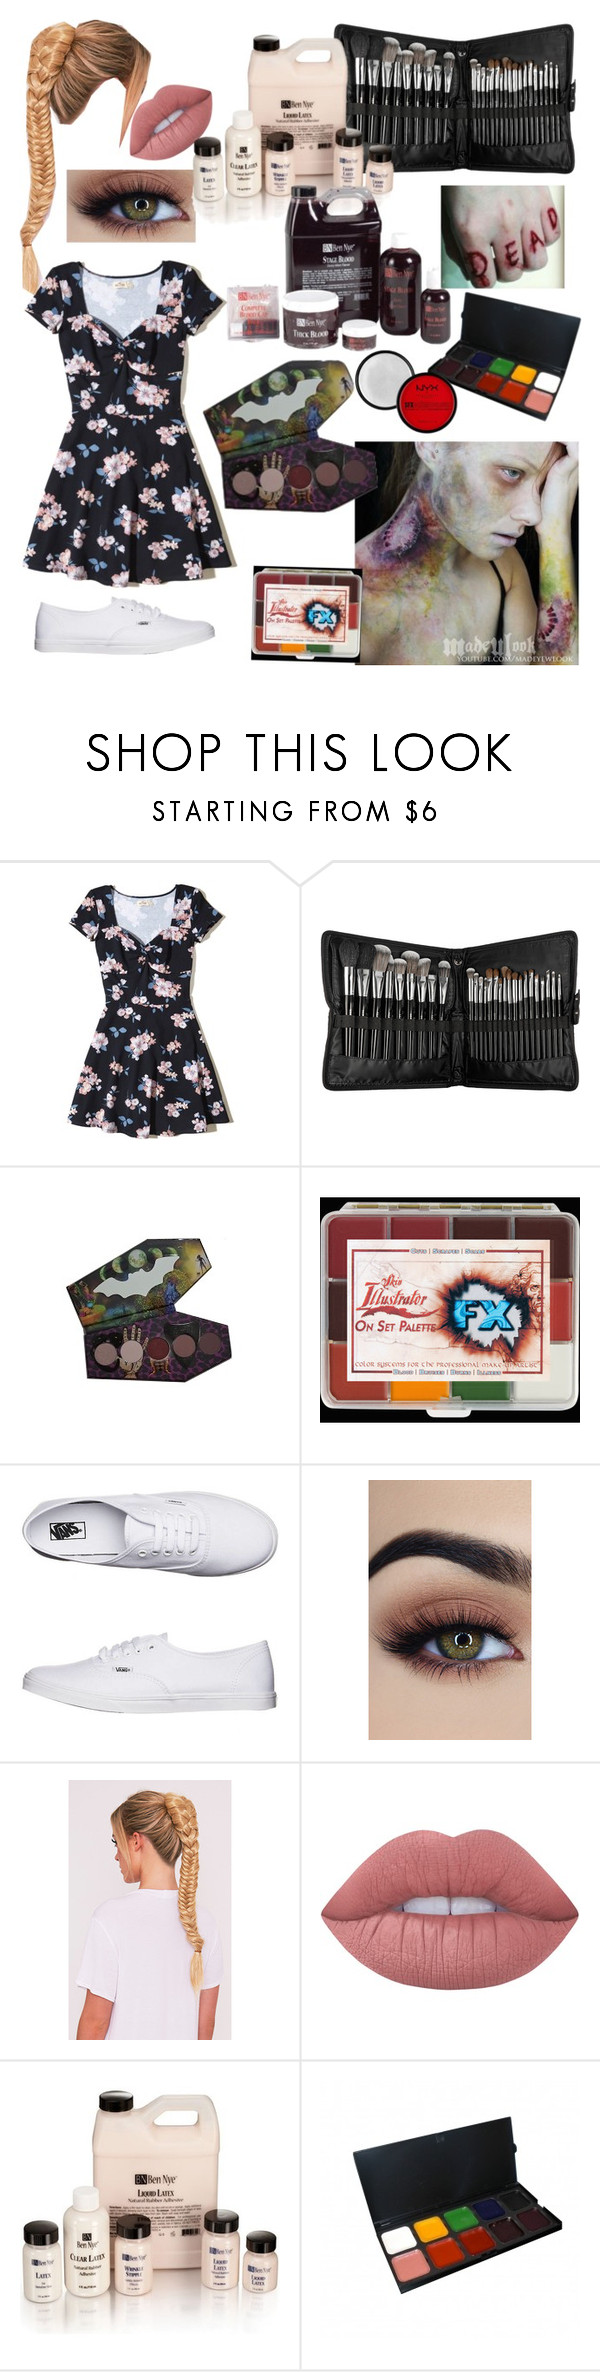 """Sfx makeup artist"" by younglove1298 ❤ liked on Polyvore featuring Hollister Co., Sephora Collection, Vans and Lime Crime"